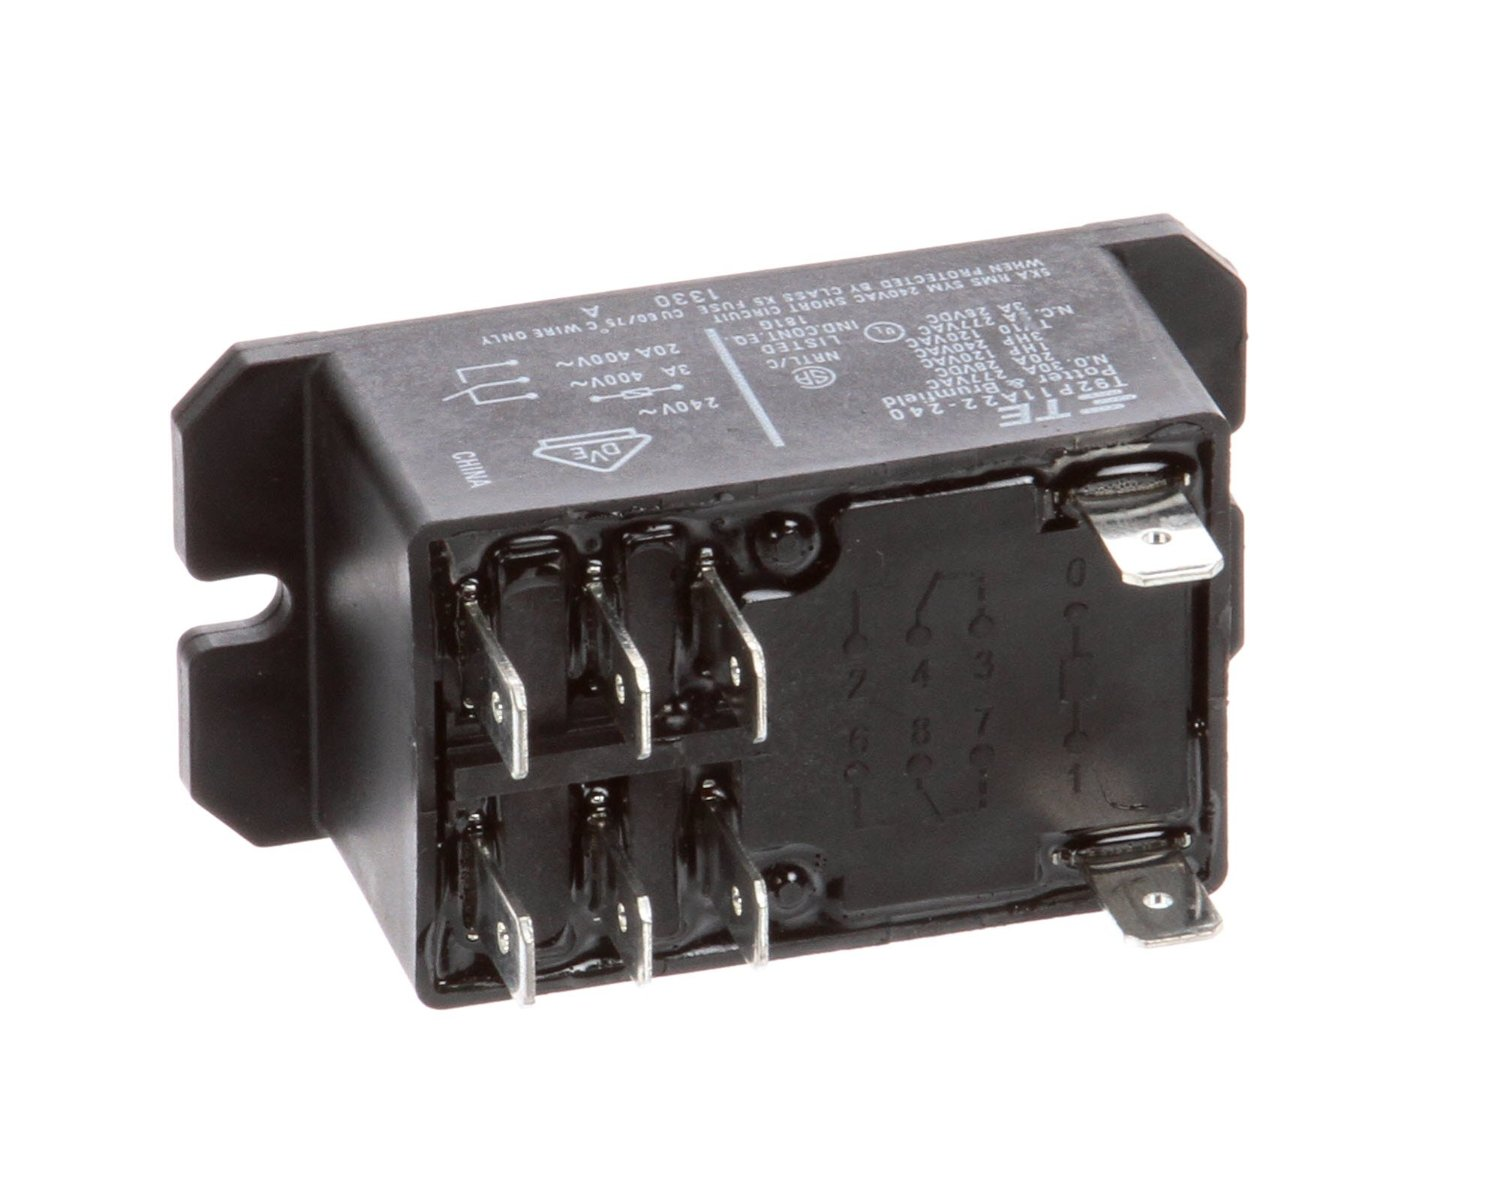 Cheap Dpdt Automotive Relay Find Deals On Spdt Solid State 12v Get Quotations Henny Penny 91727 Power 240 Vac